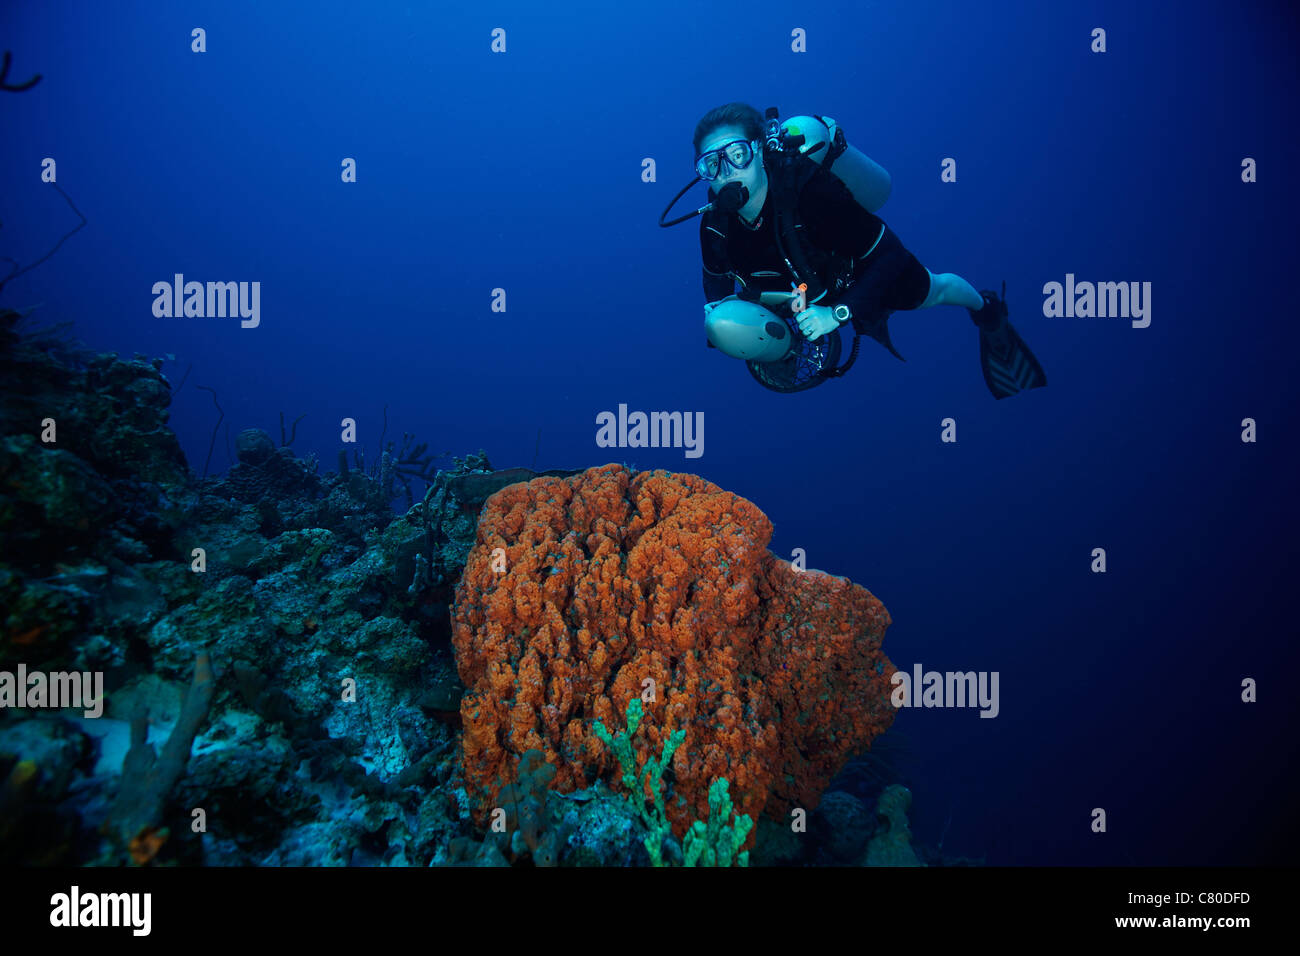 Scuba diver swims over a large elephant ear sponge off the coast of Bonaire, Caribbean Netherlands. - Stock Image